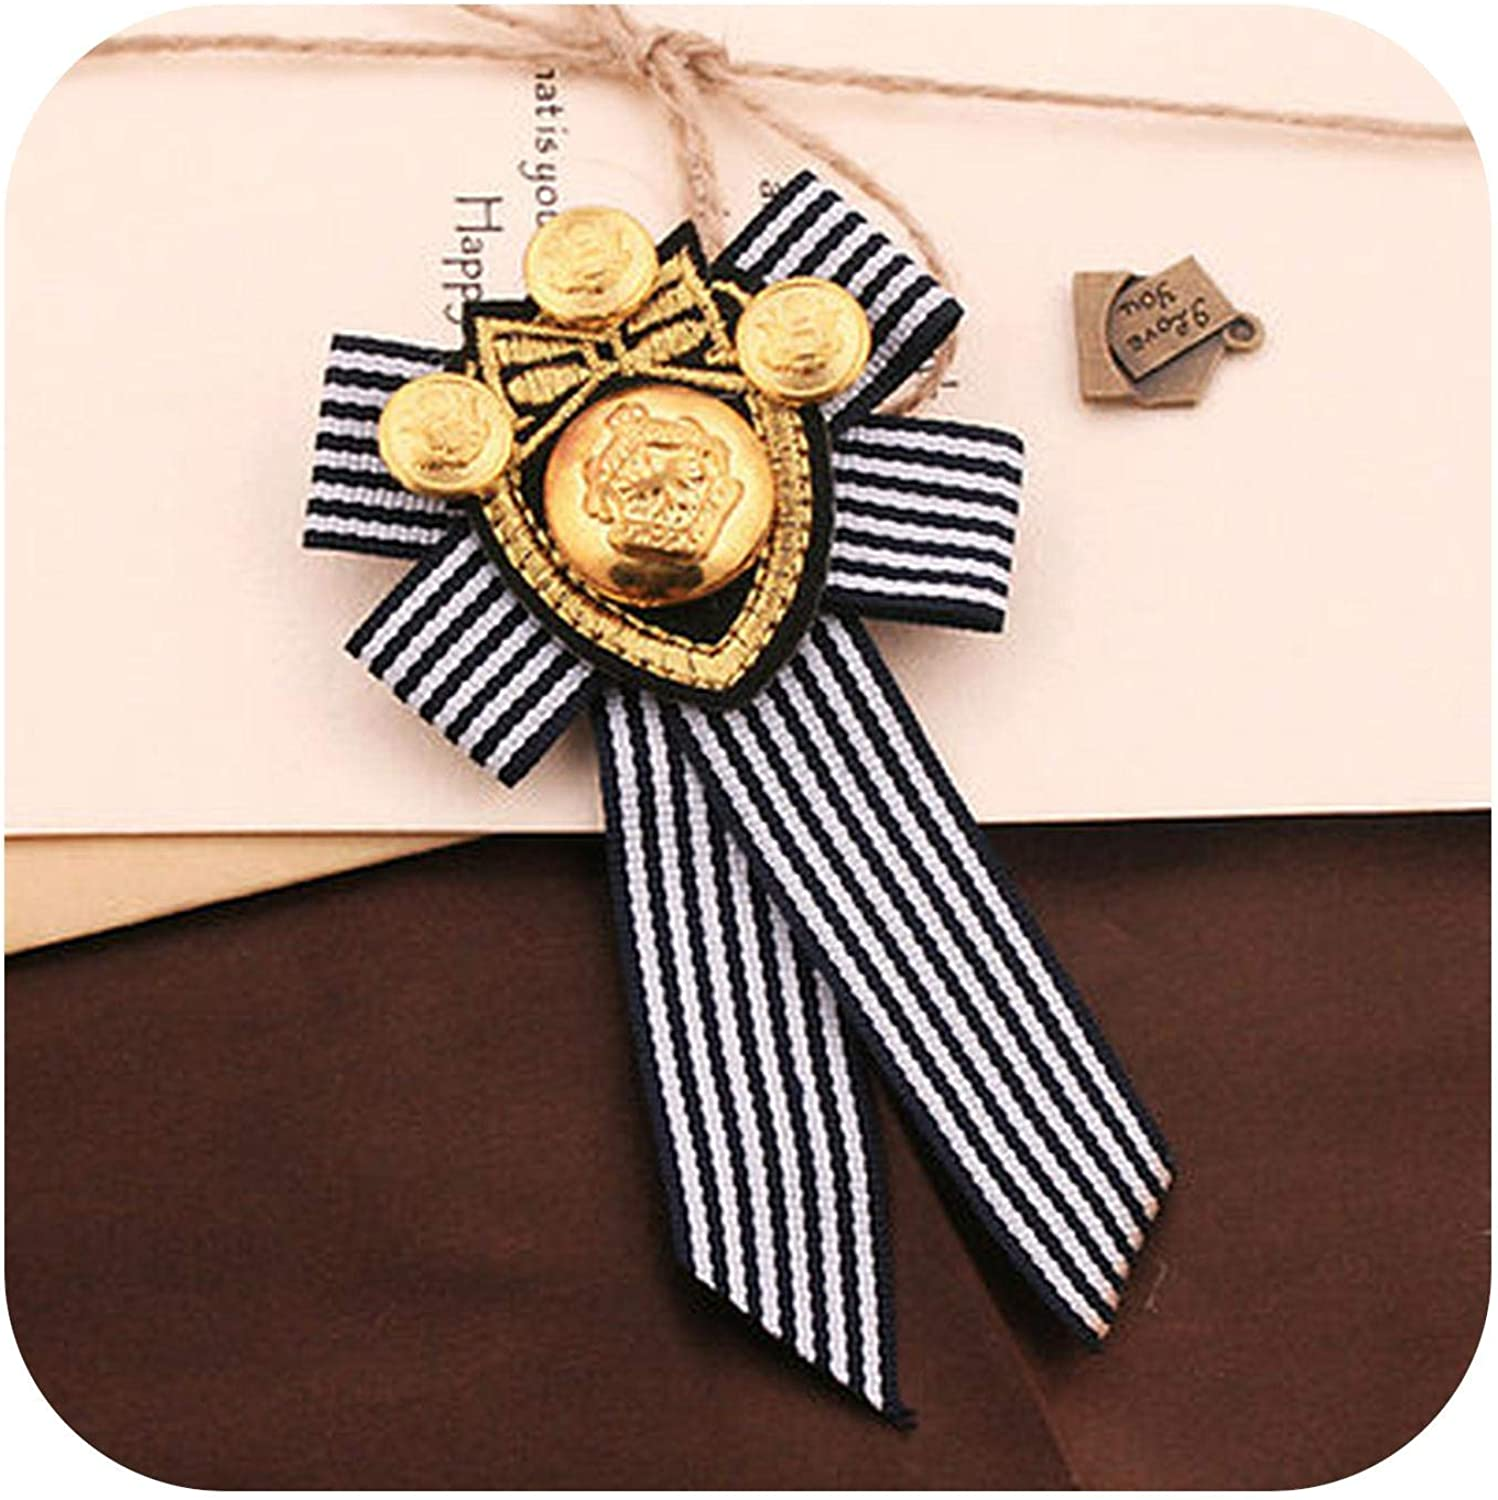 2020 Direct Selling Hot Plated Free shipping New Lovers' Trendy Fema Cash special price Broche Anchor